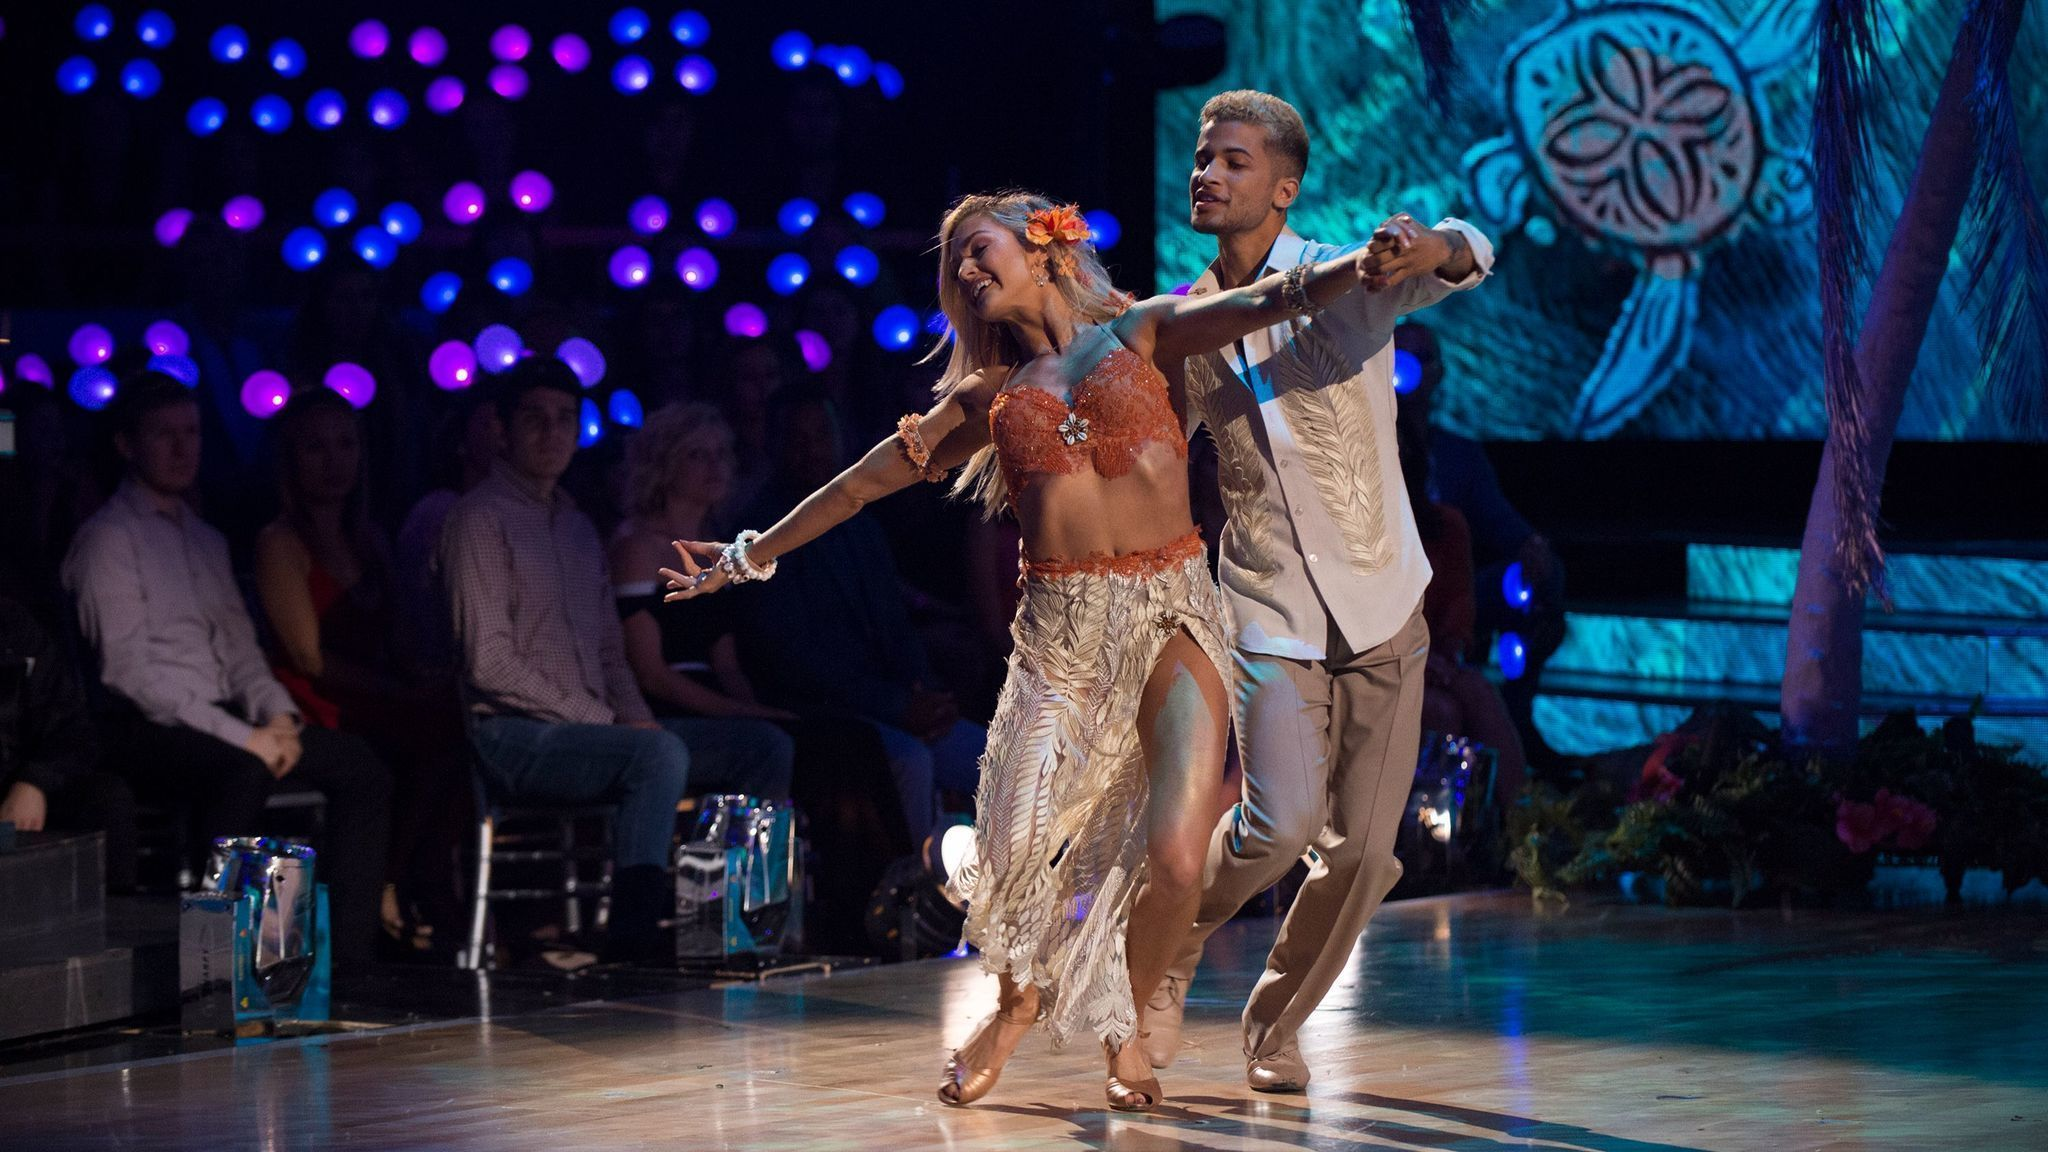 'Dancing With the Stars' recap: Jordan Fisher is perfect; Sasha Pieterse is eliminated